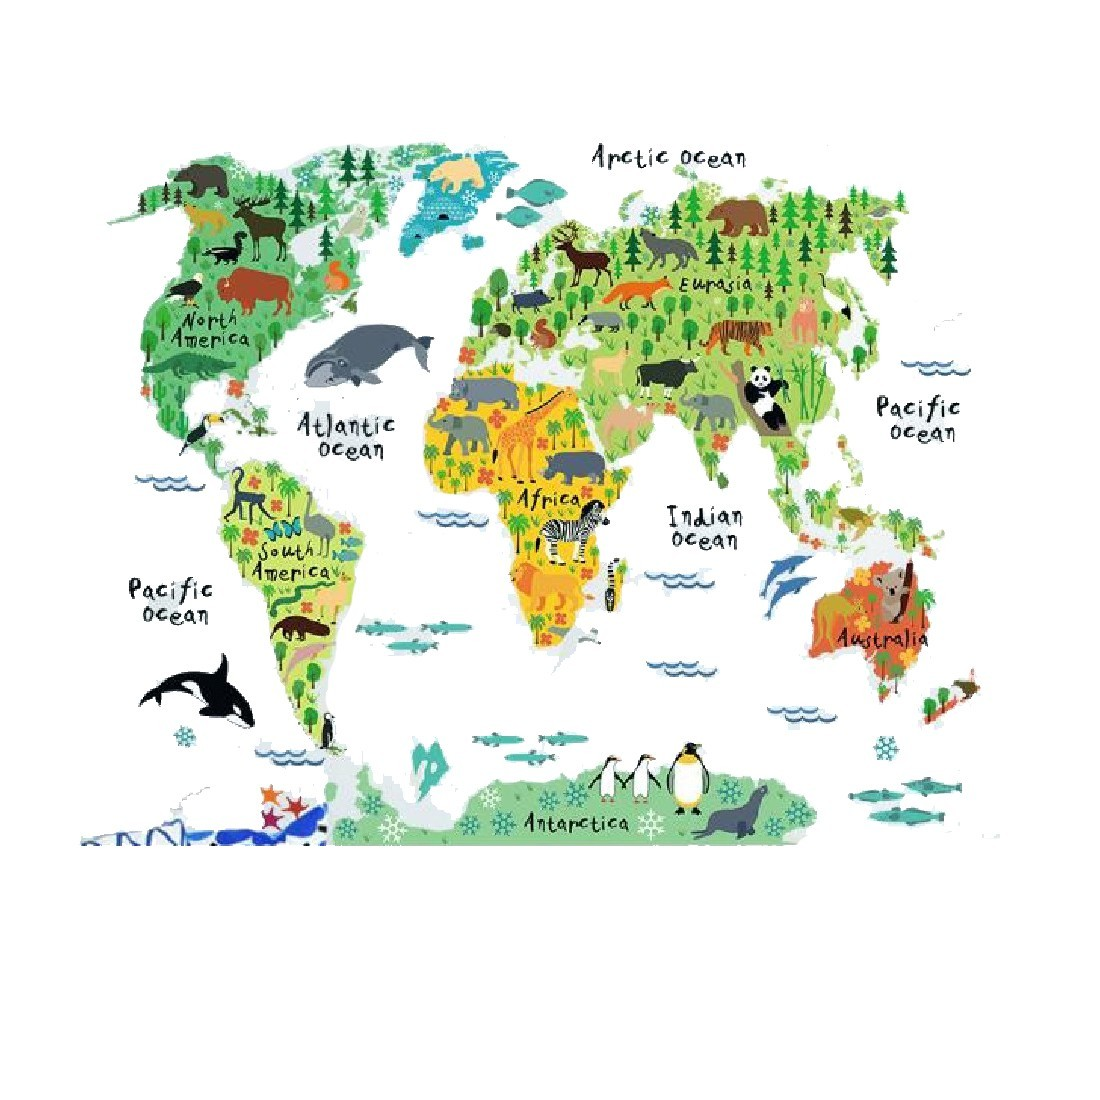 Hot sale removable diy mural wallpaper animal world map wall hot sale removable diy mural wallpaper animal world map wall stickers decal for home decoration free shipping in wall stickers from home garden on gumiabroncs